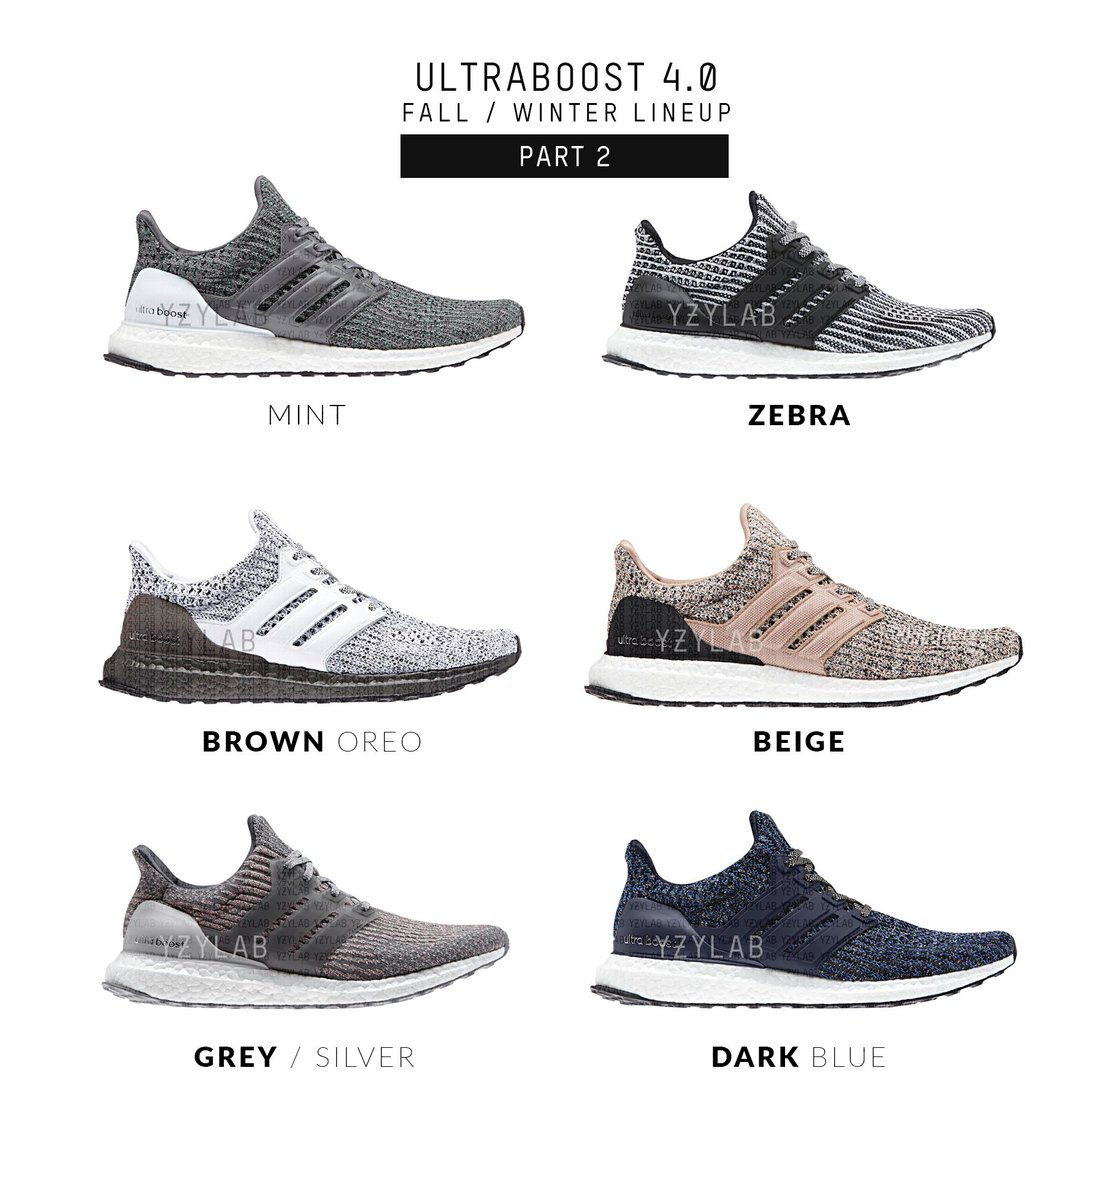 996732af2dc Ultraboost 4.0 Fall   Winter Lineup Part 2   Sneakers